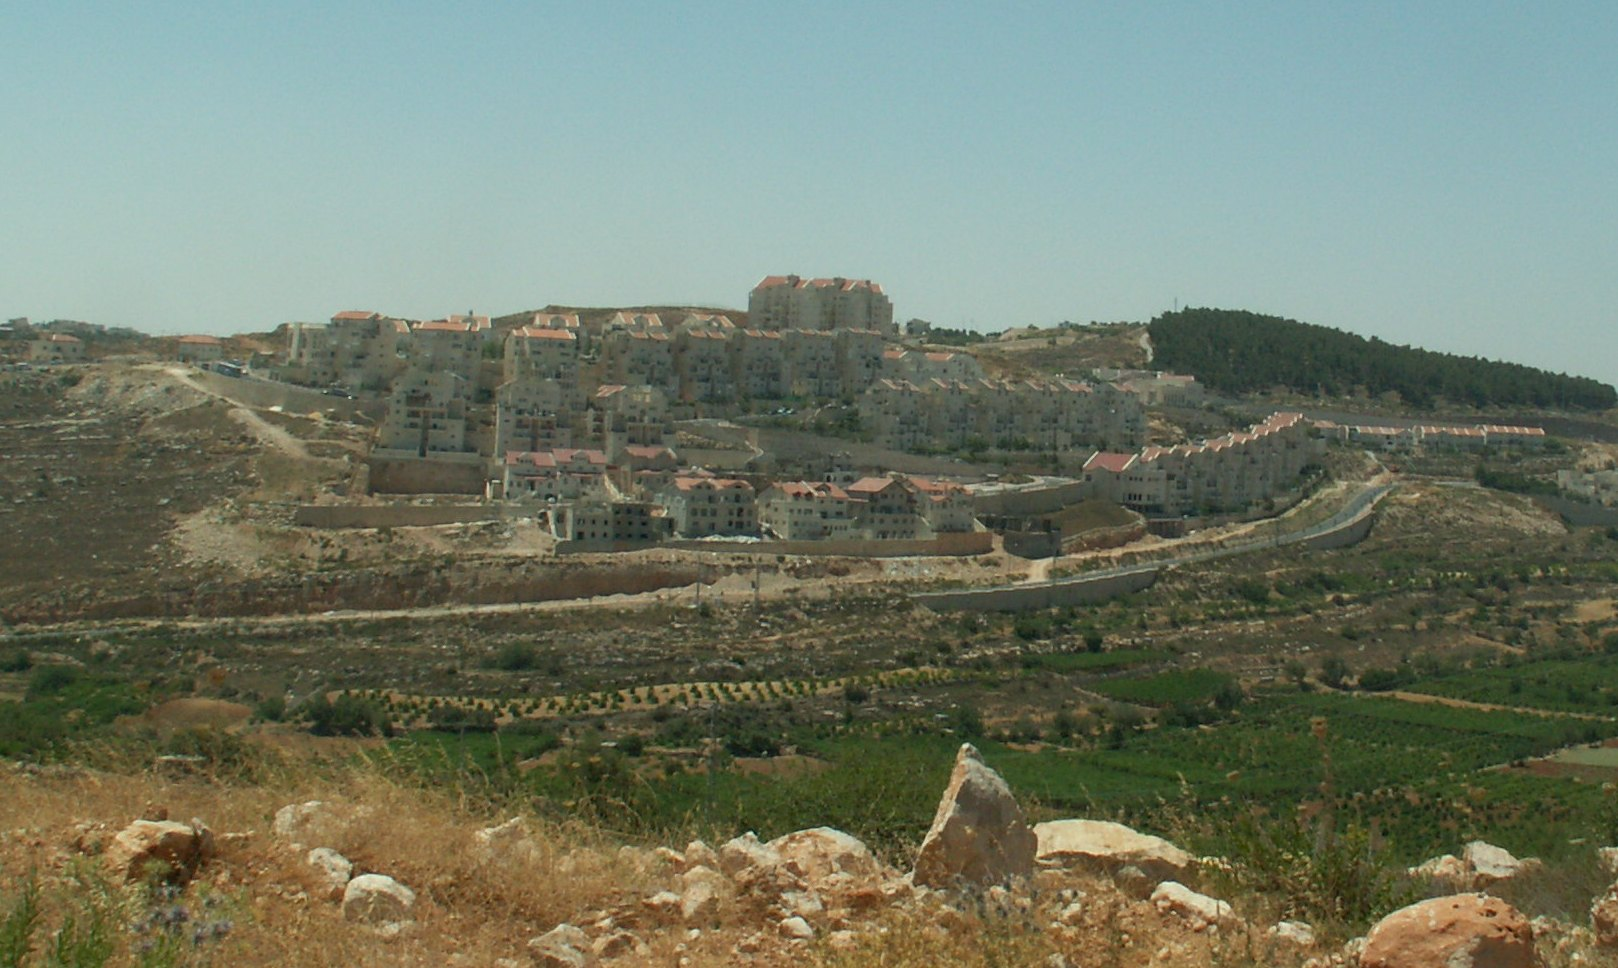 The Givat HaZayit neighborhood in Efrat - started as an outpost of few trailer homes